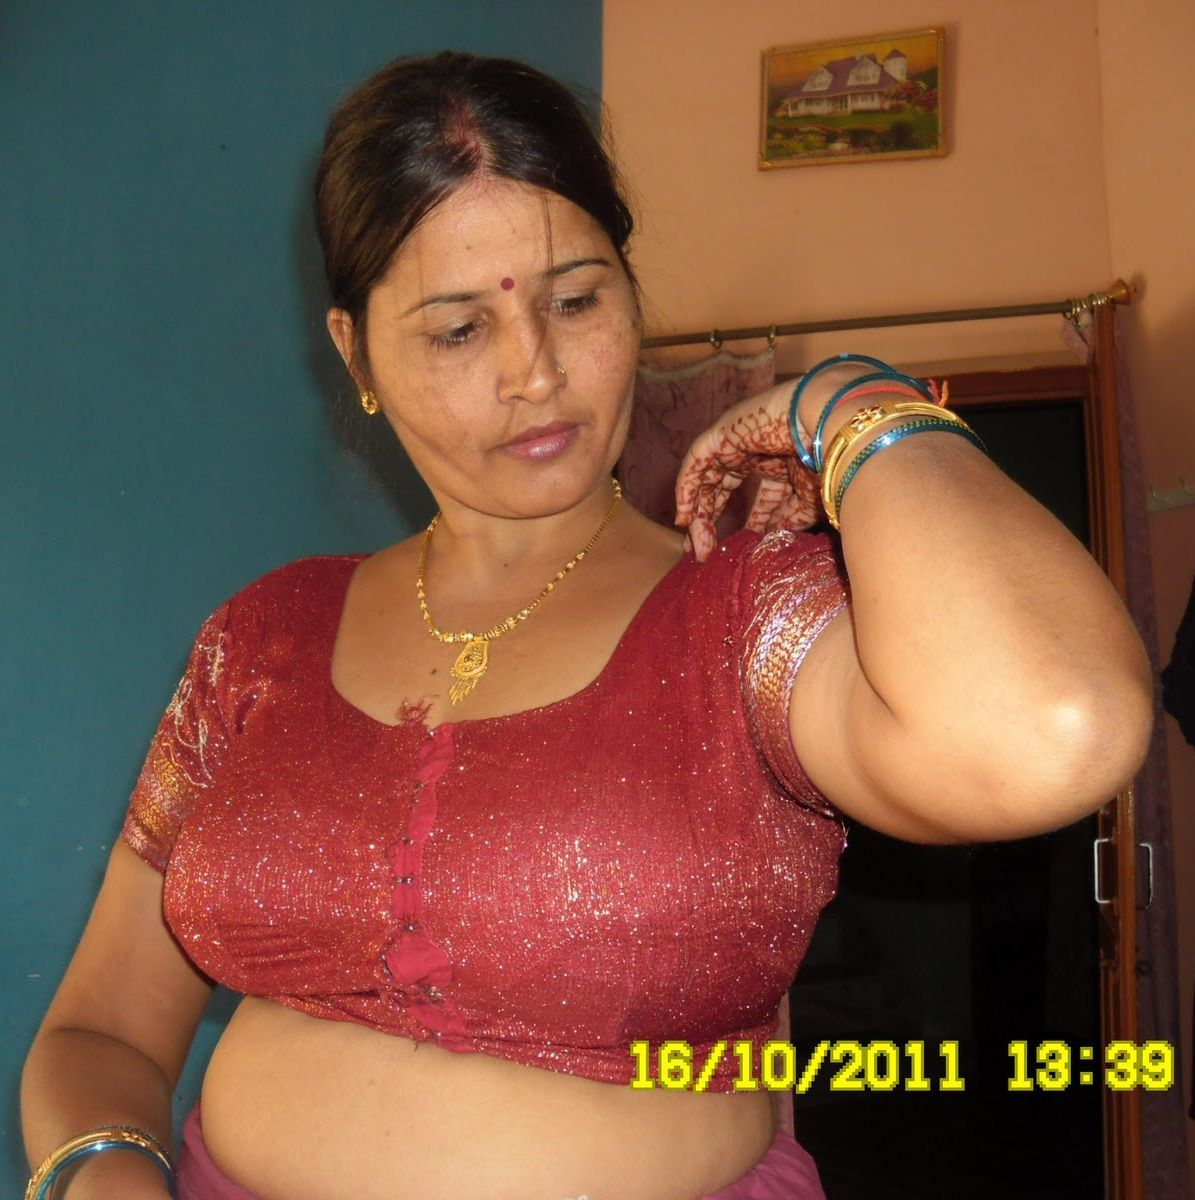 Agree, remarkable Indian bbw aunties nude Pinterest version